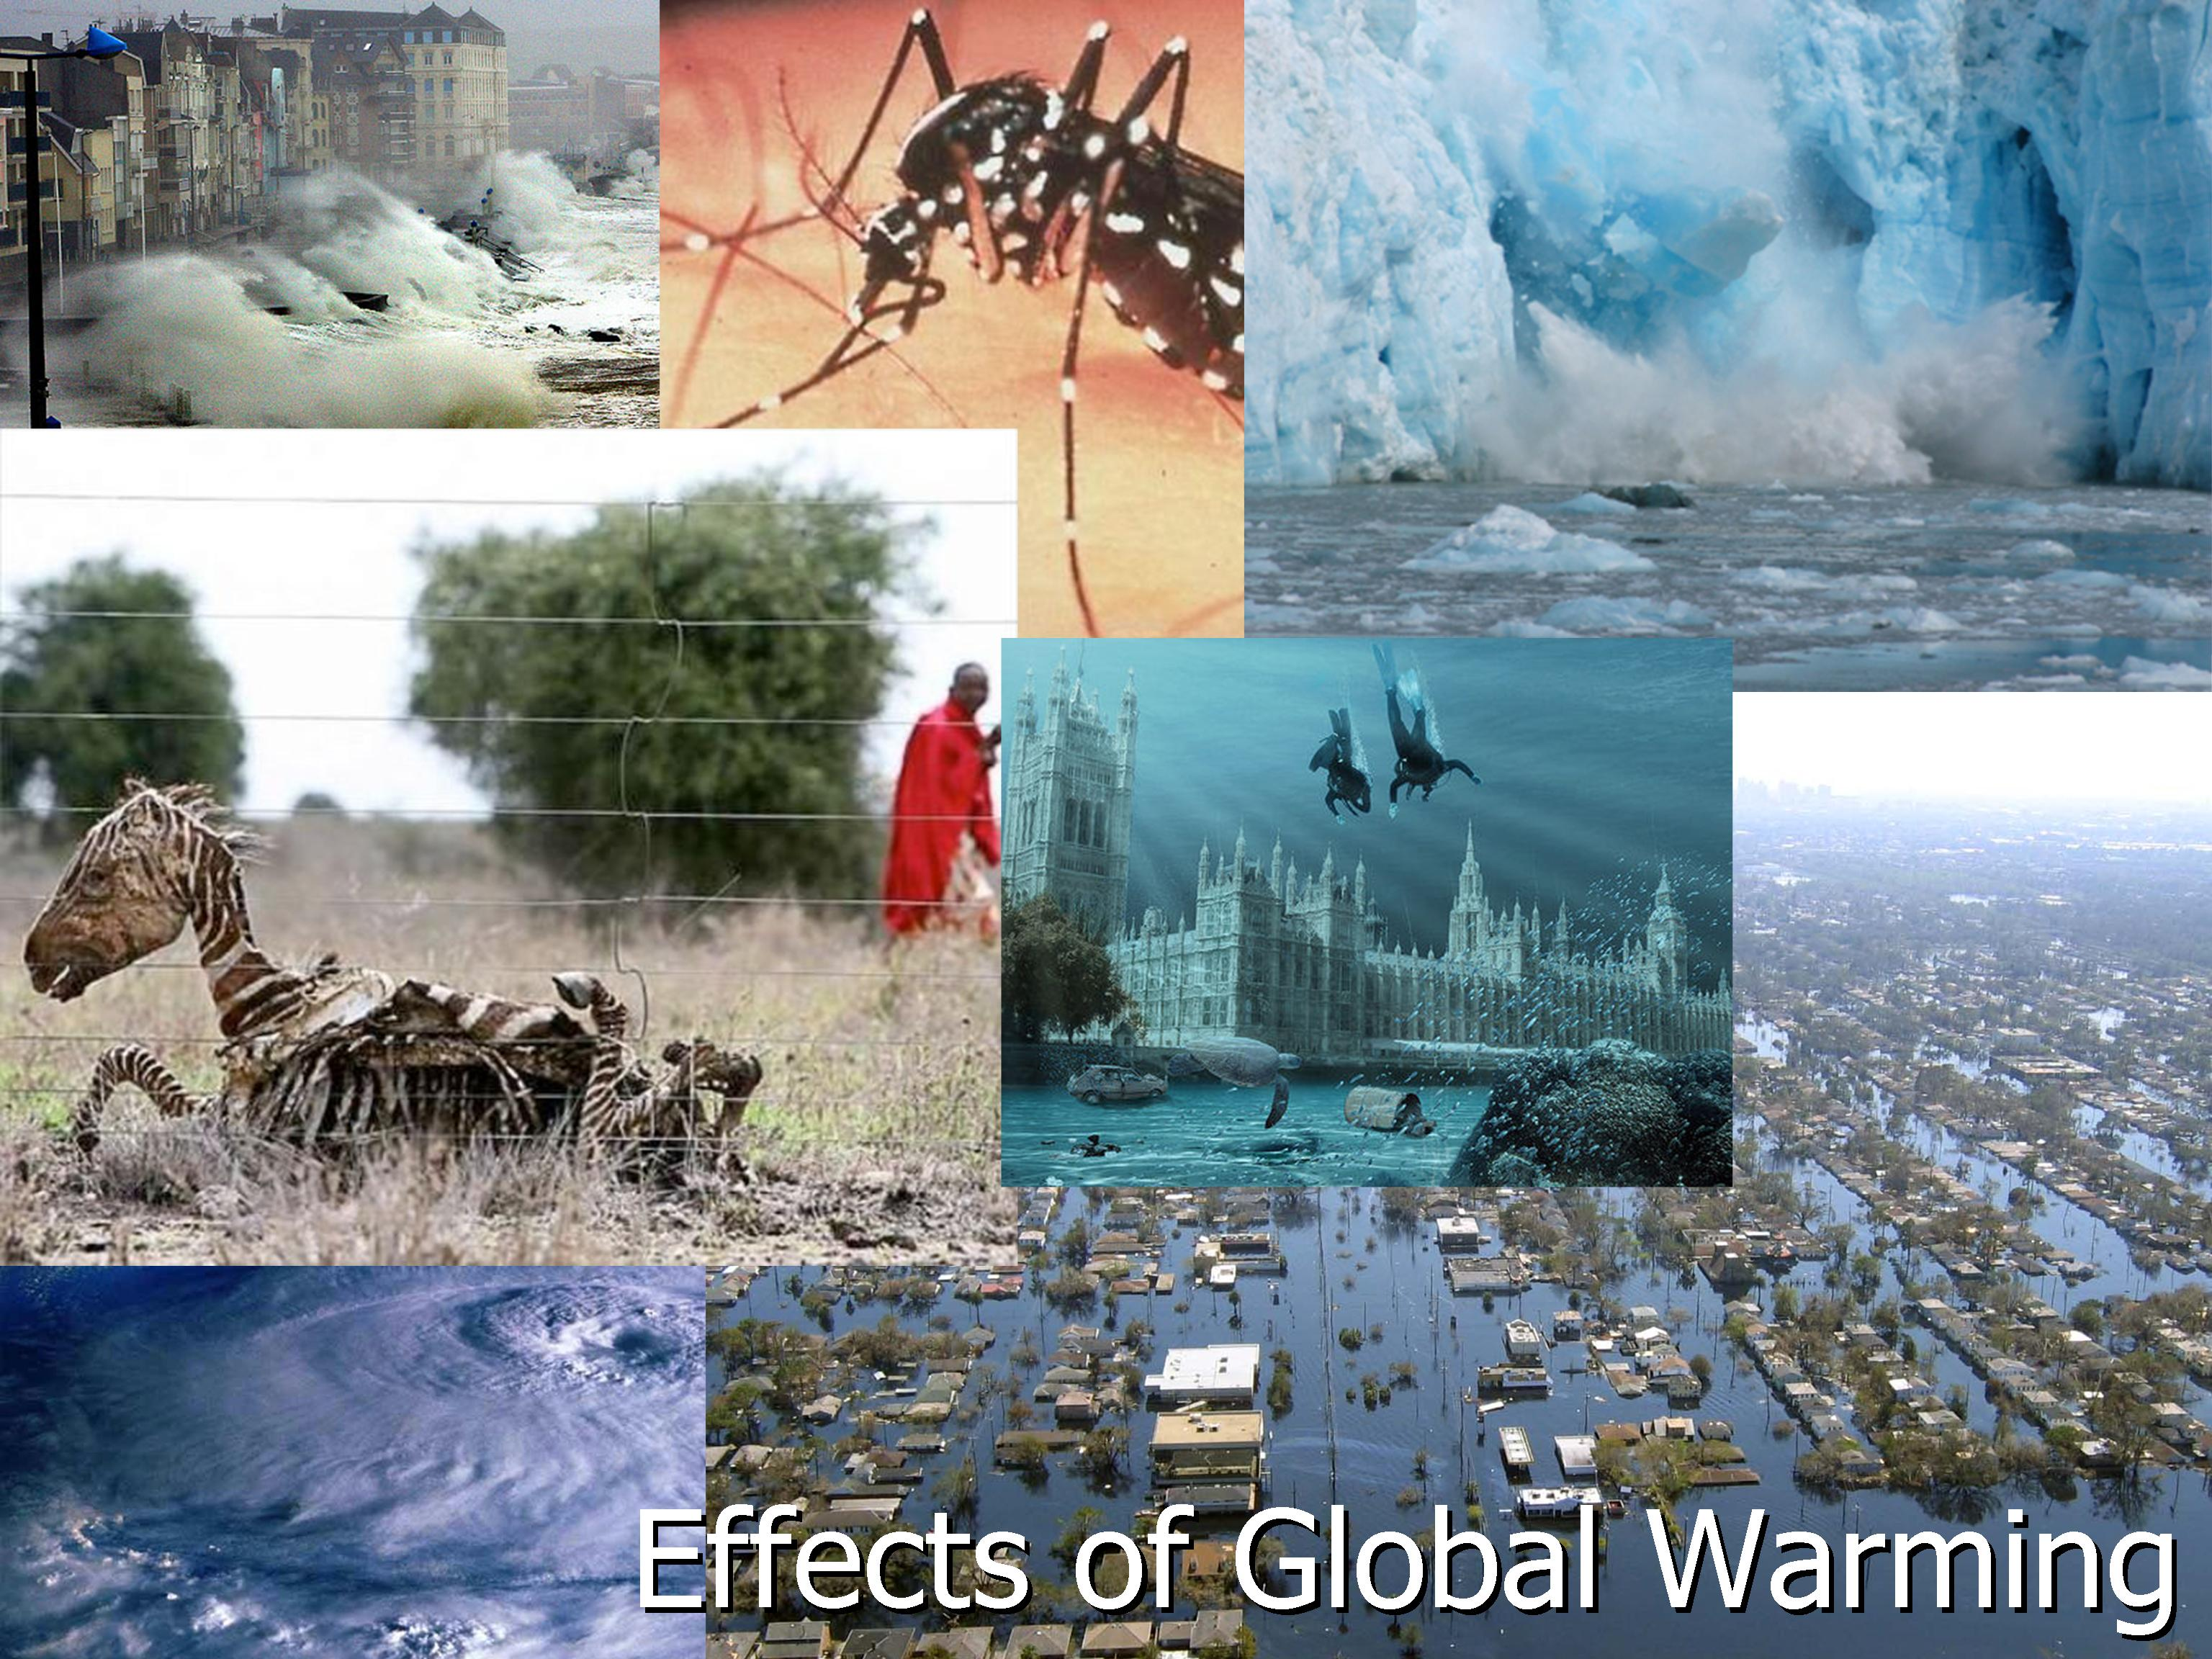 an introduction to the effects of global warming on the global environment Modern global warming is the result of an increase in magnitude of the so-called greenhouse effect, a warming of earth's surface and lower atmosphere caused by the presence of water vapour, carbon dioxide, methane, nitrous oxides, and other greenhouse gases.